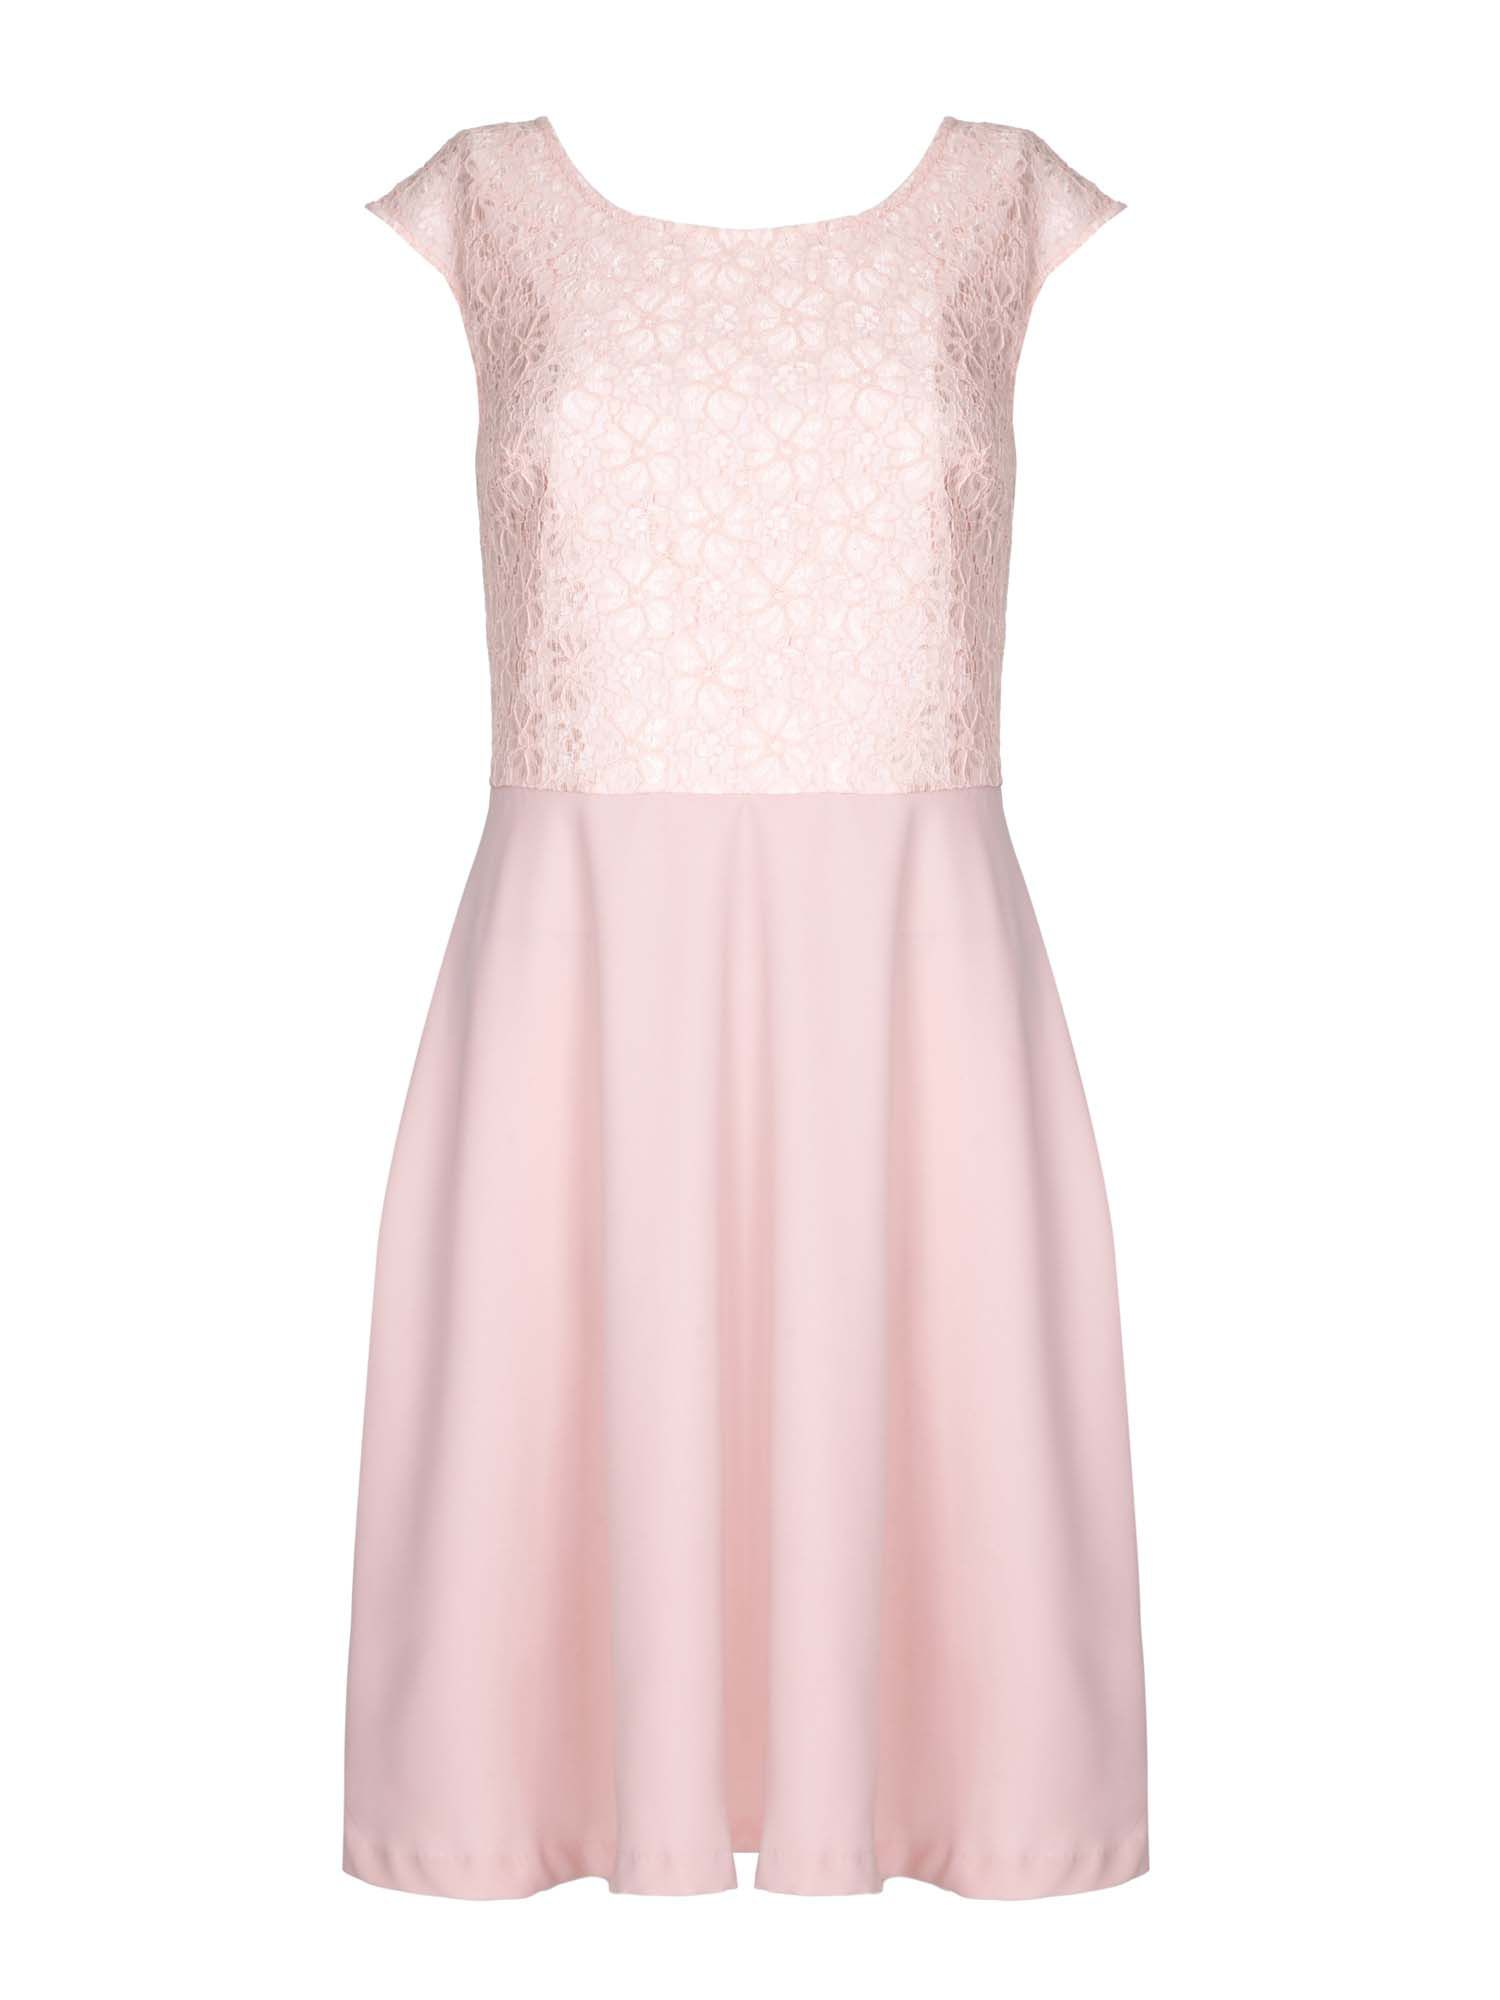 Yumi Floral Lace Panel Dress, Pink